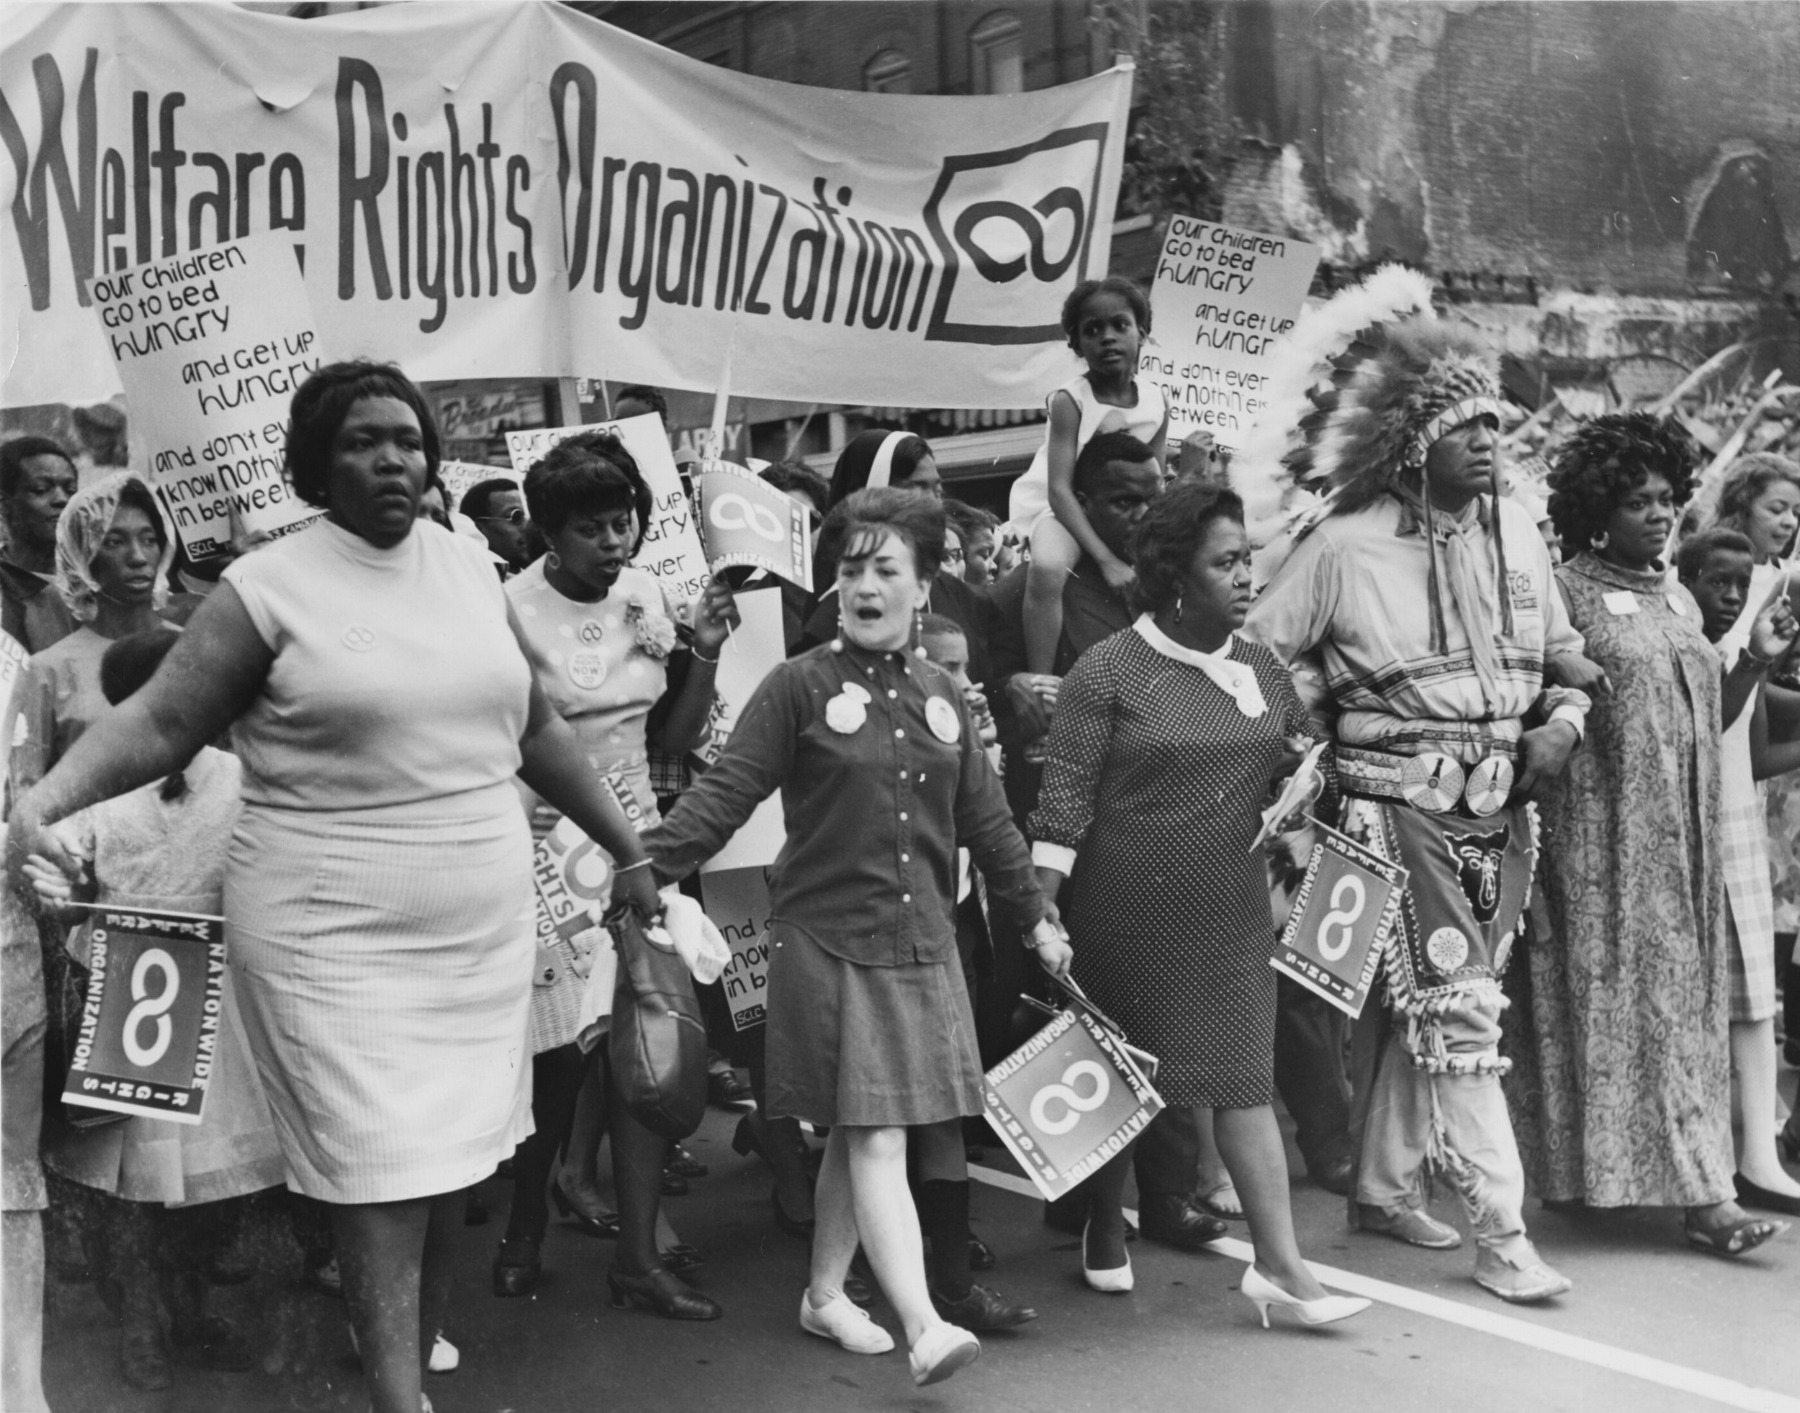 Organizers and volunteers from the National Welfare Rights Organization, marching to end hunger in 1968. (Wikimedia Commons)